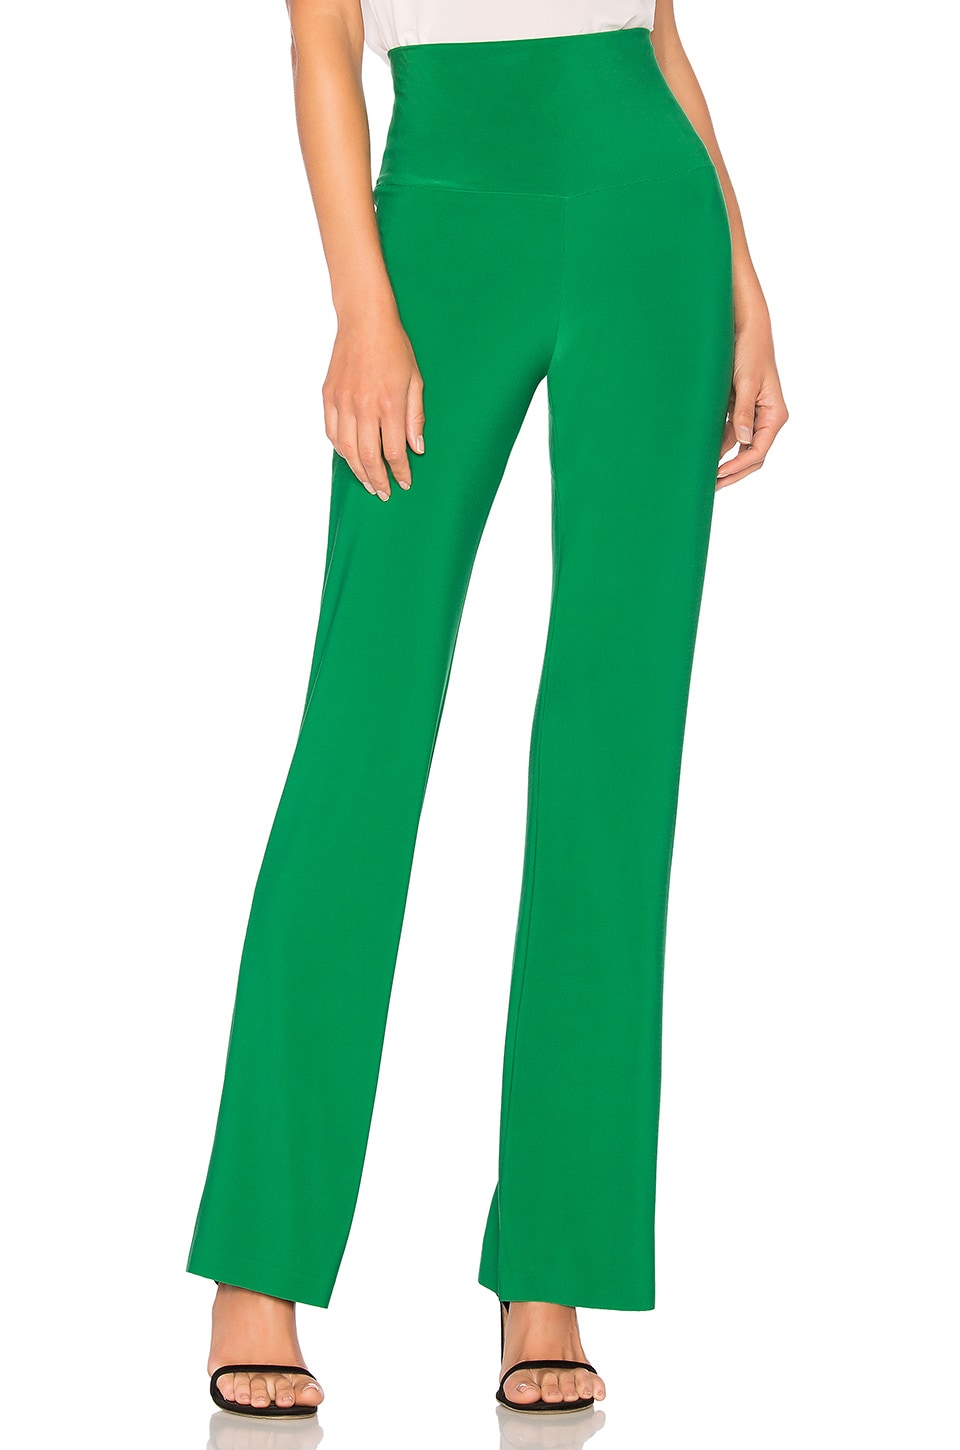 Norma Kamali X REVOLVE Boot Pant in Kelly Green